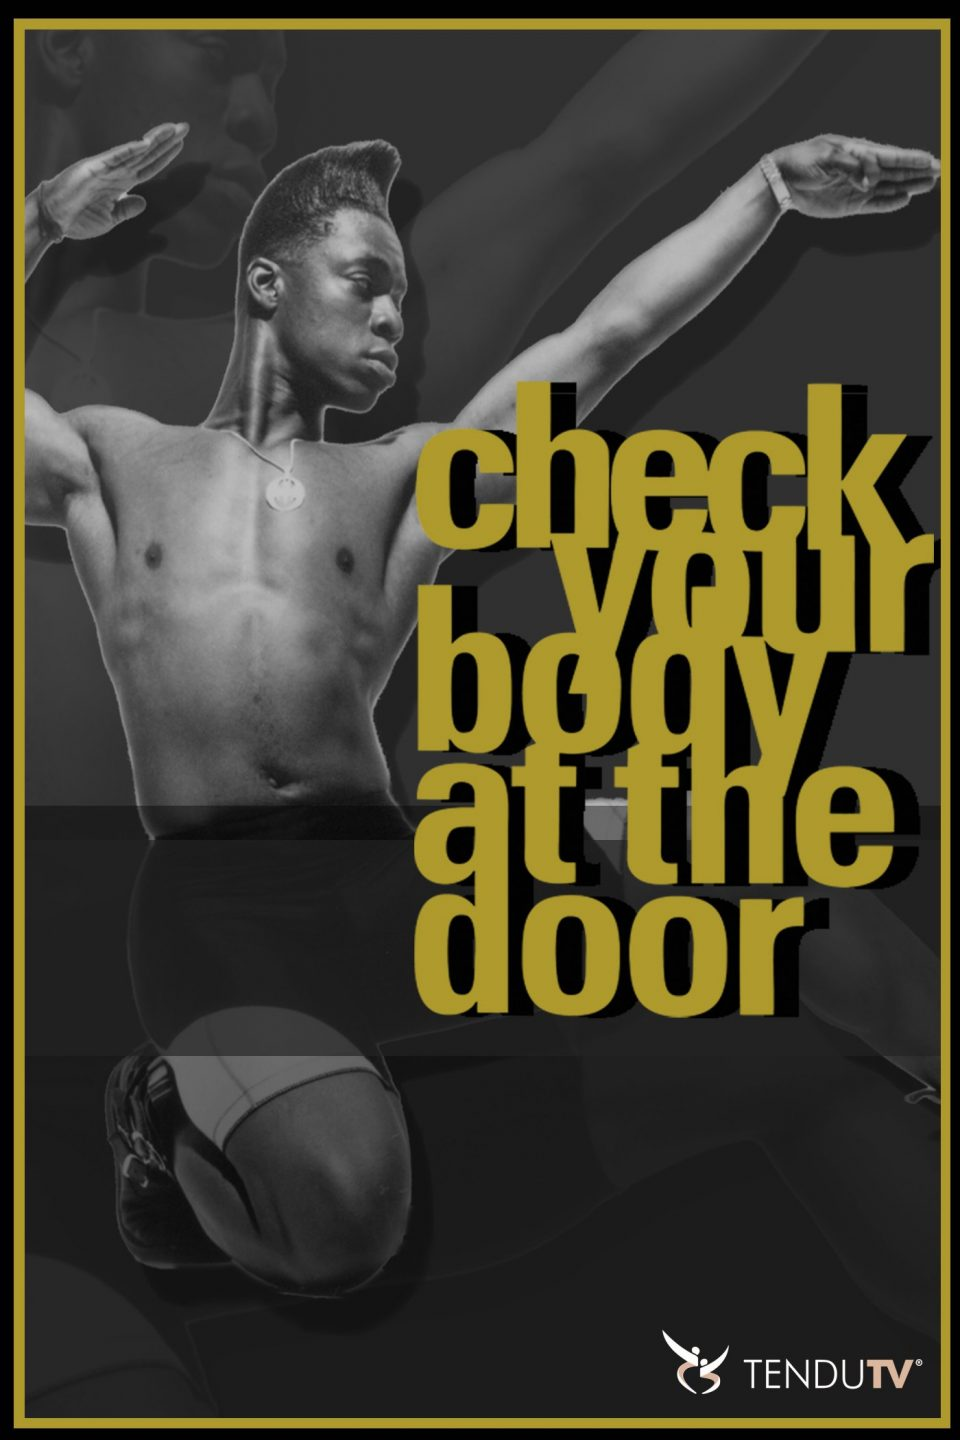 check your body at the door